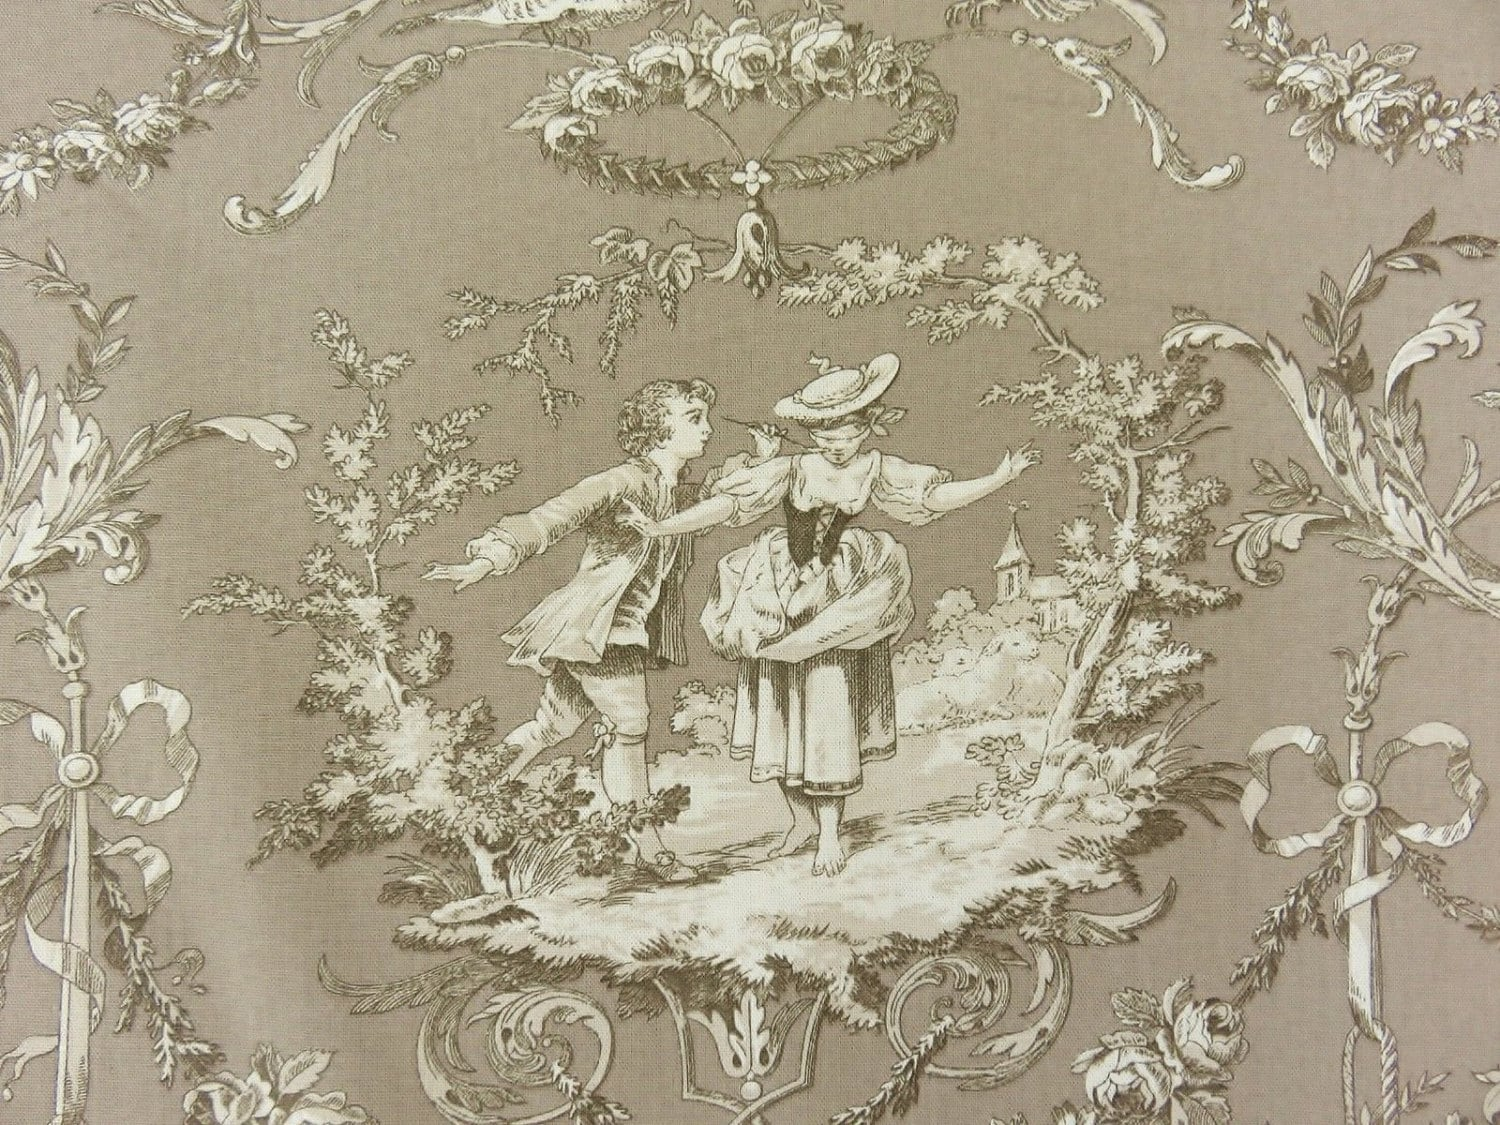 superb new toile de jouy fabric richloom sweet william style. Black Bedroom Furniture Sets. Home Design Ideas